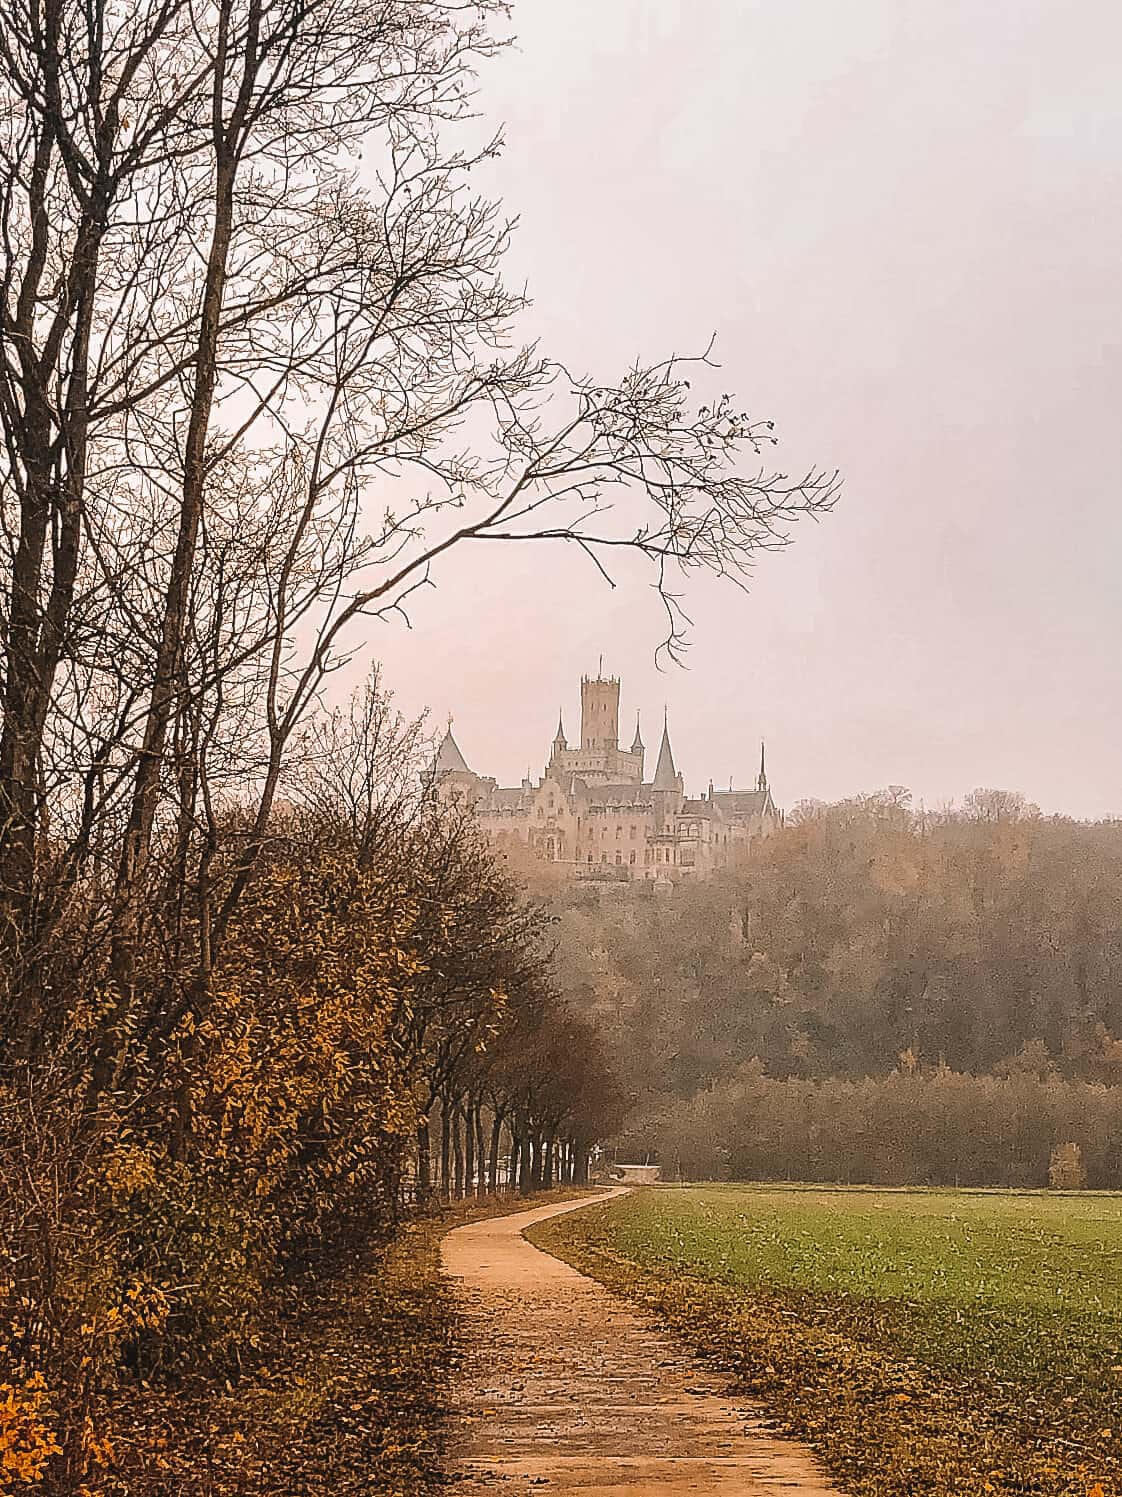 A footpath lined with trees and a castle on a hill in the distance